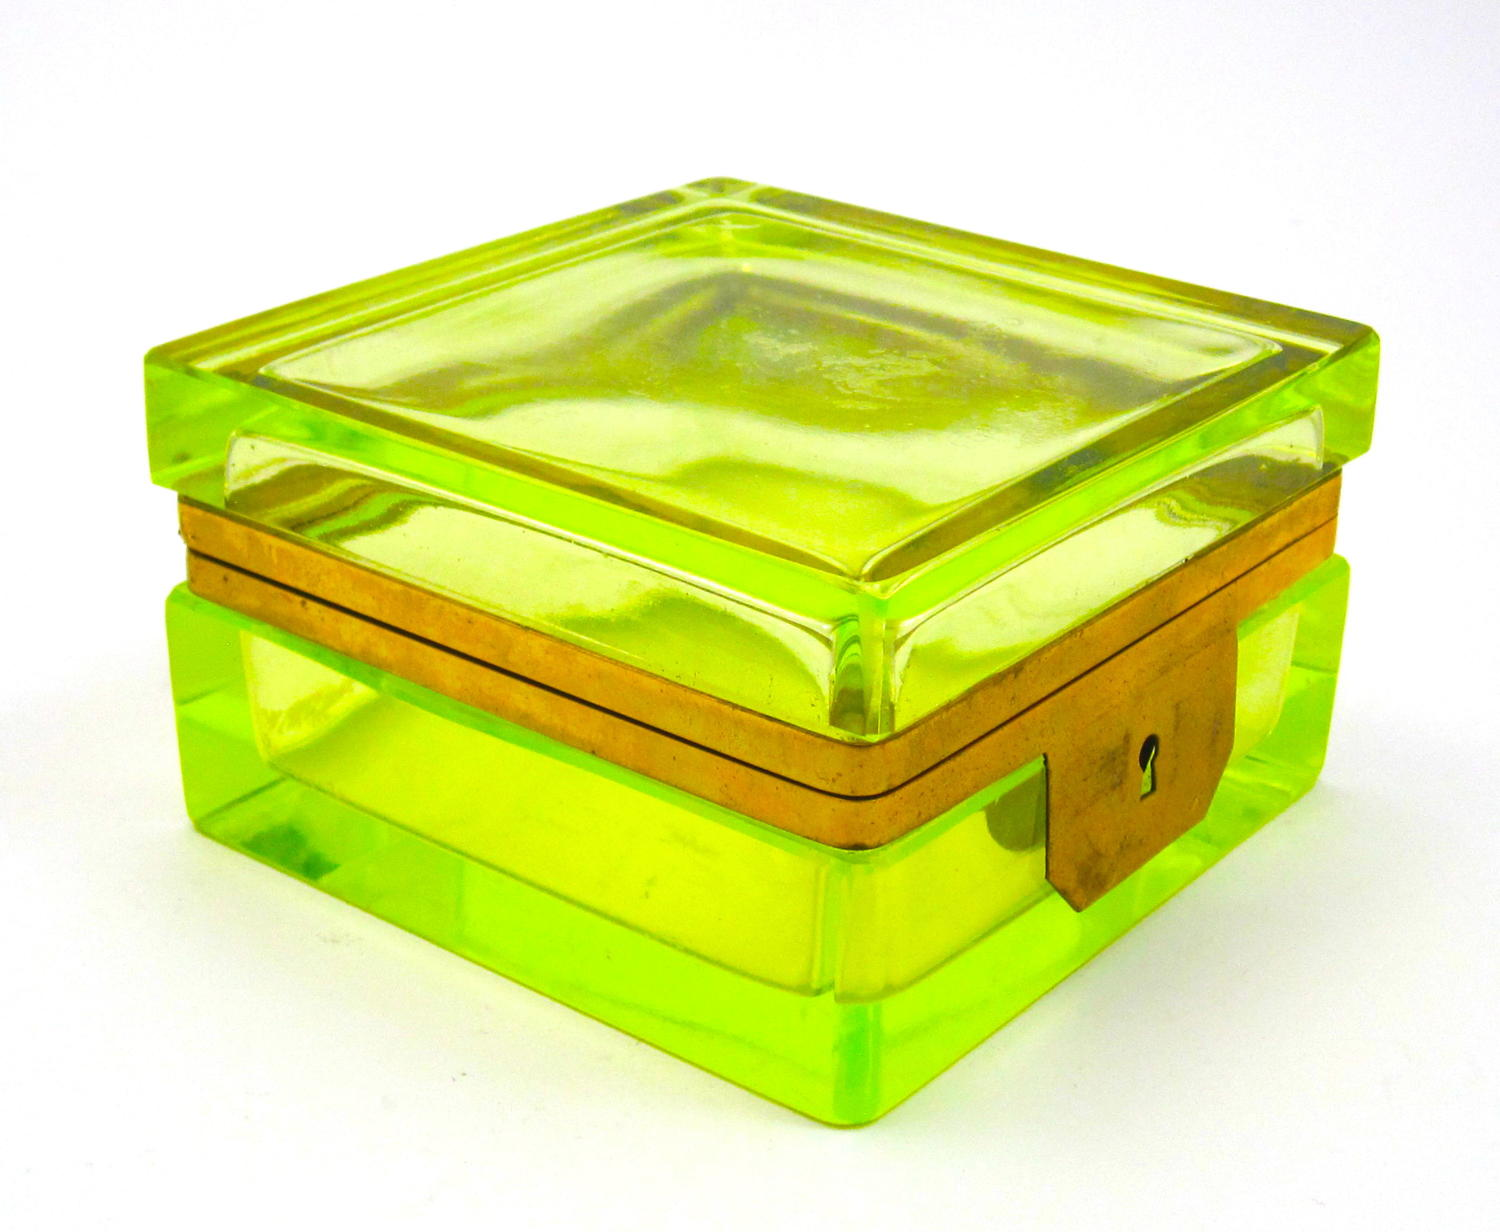 Antique Square Uranium Glass Casket with Bronze Mounts.